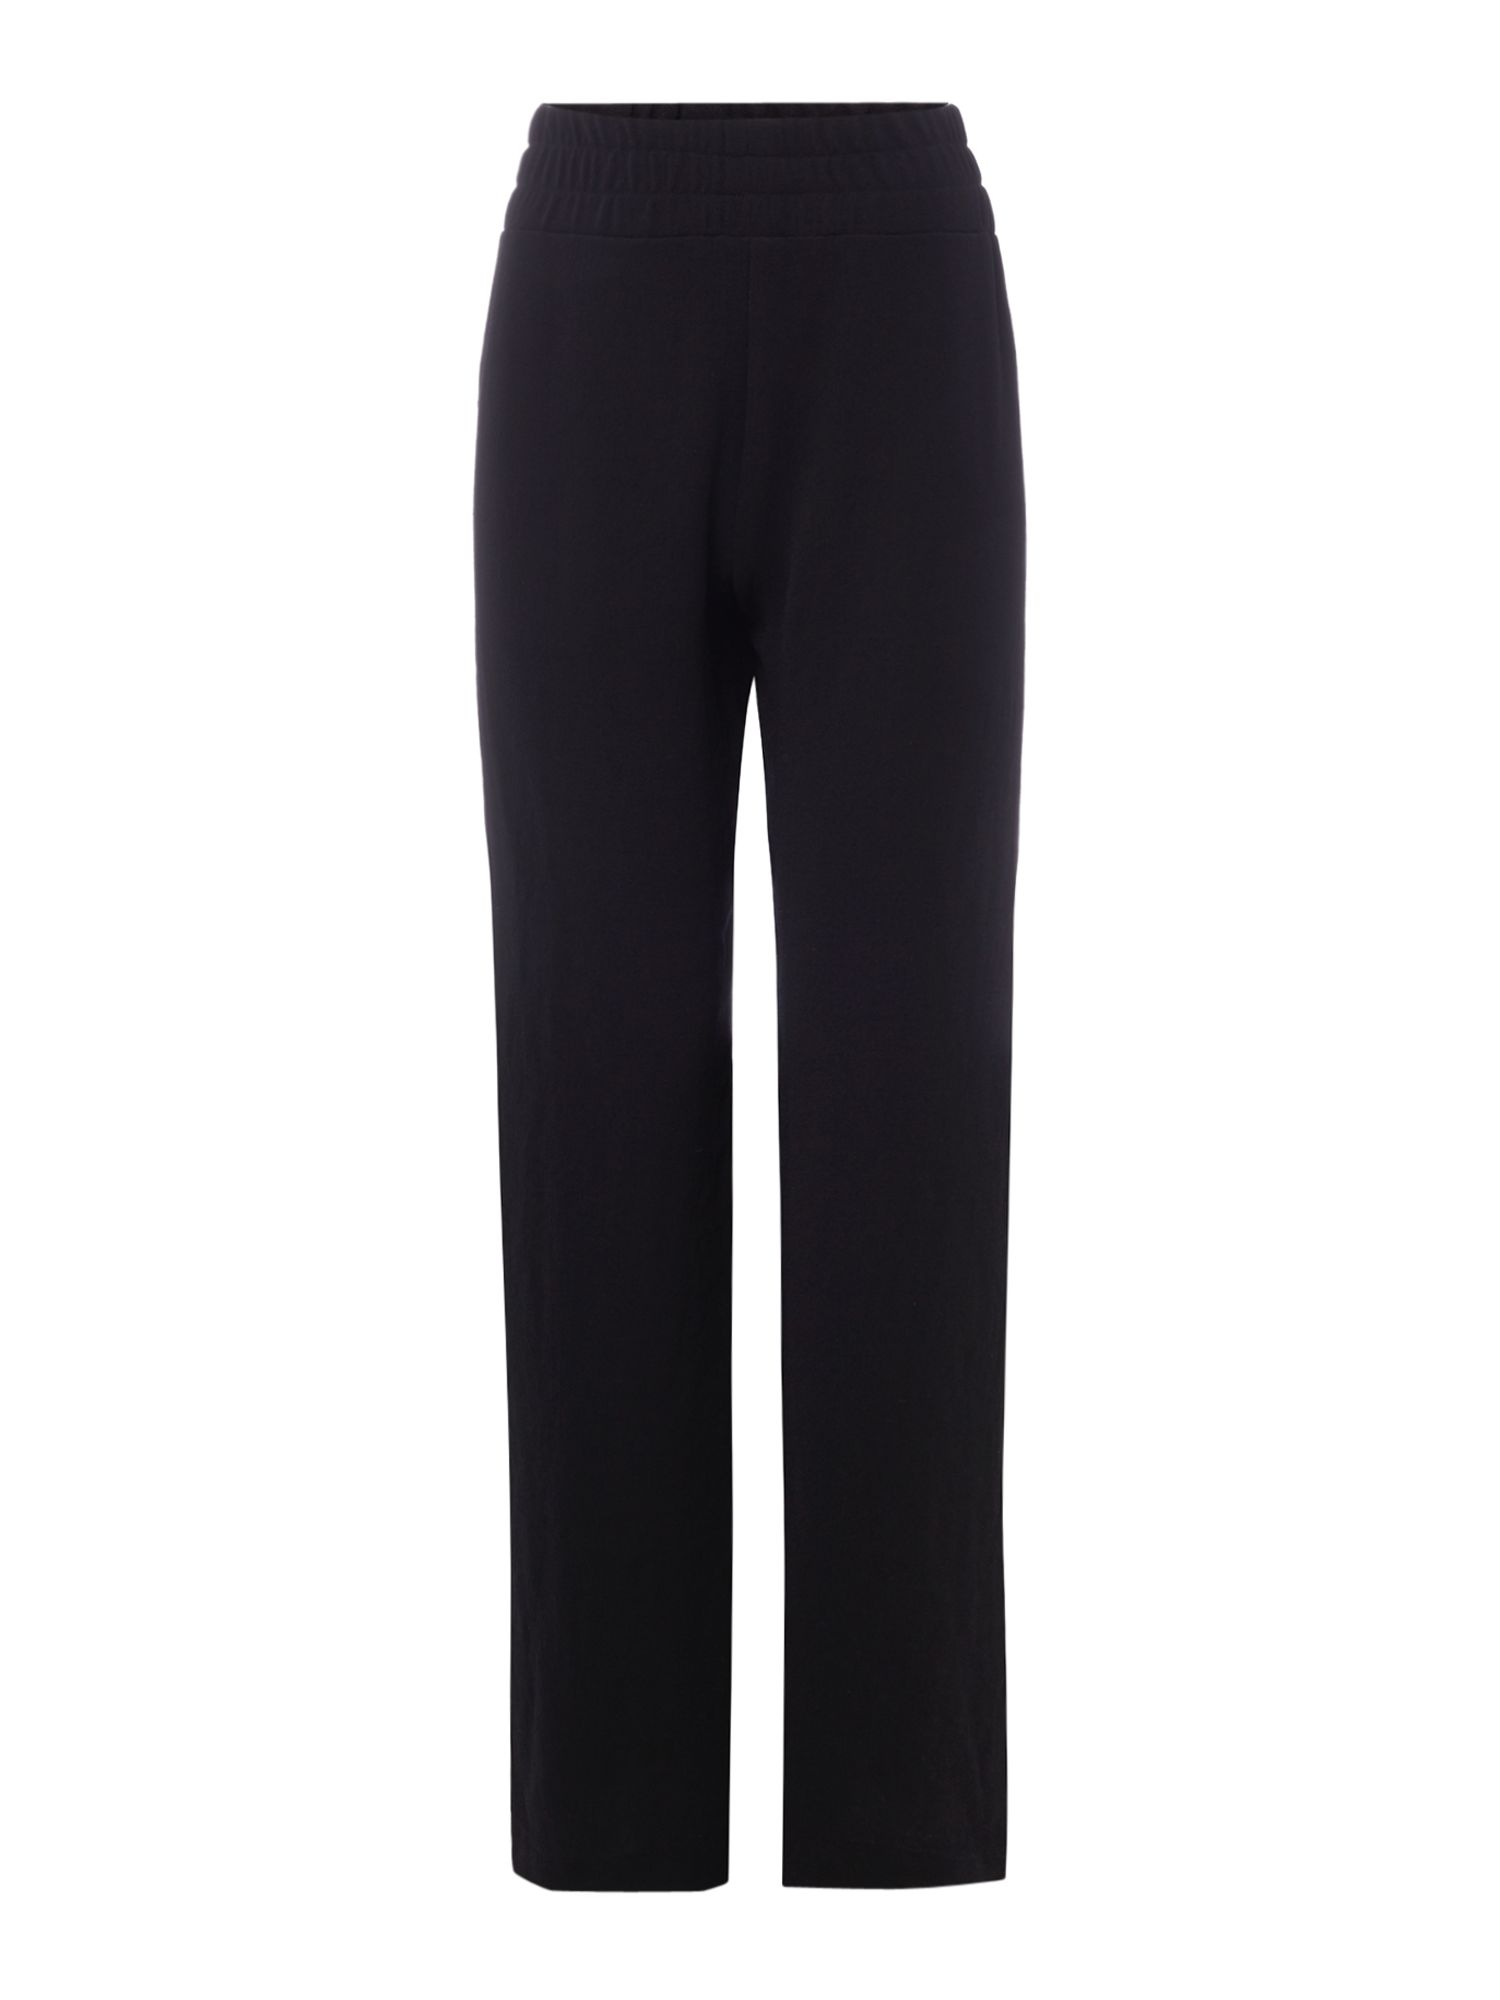 Crea Concept Wide leg trousers, Black